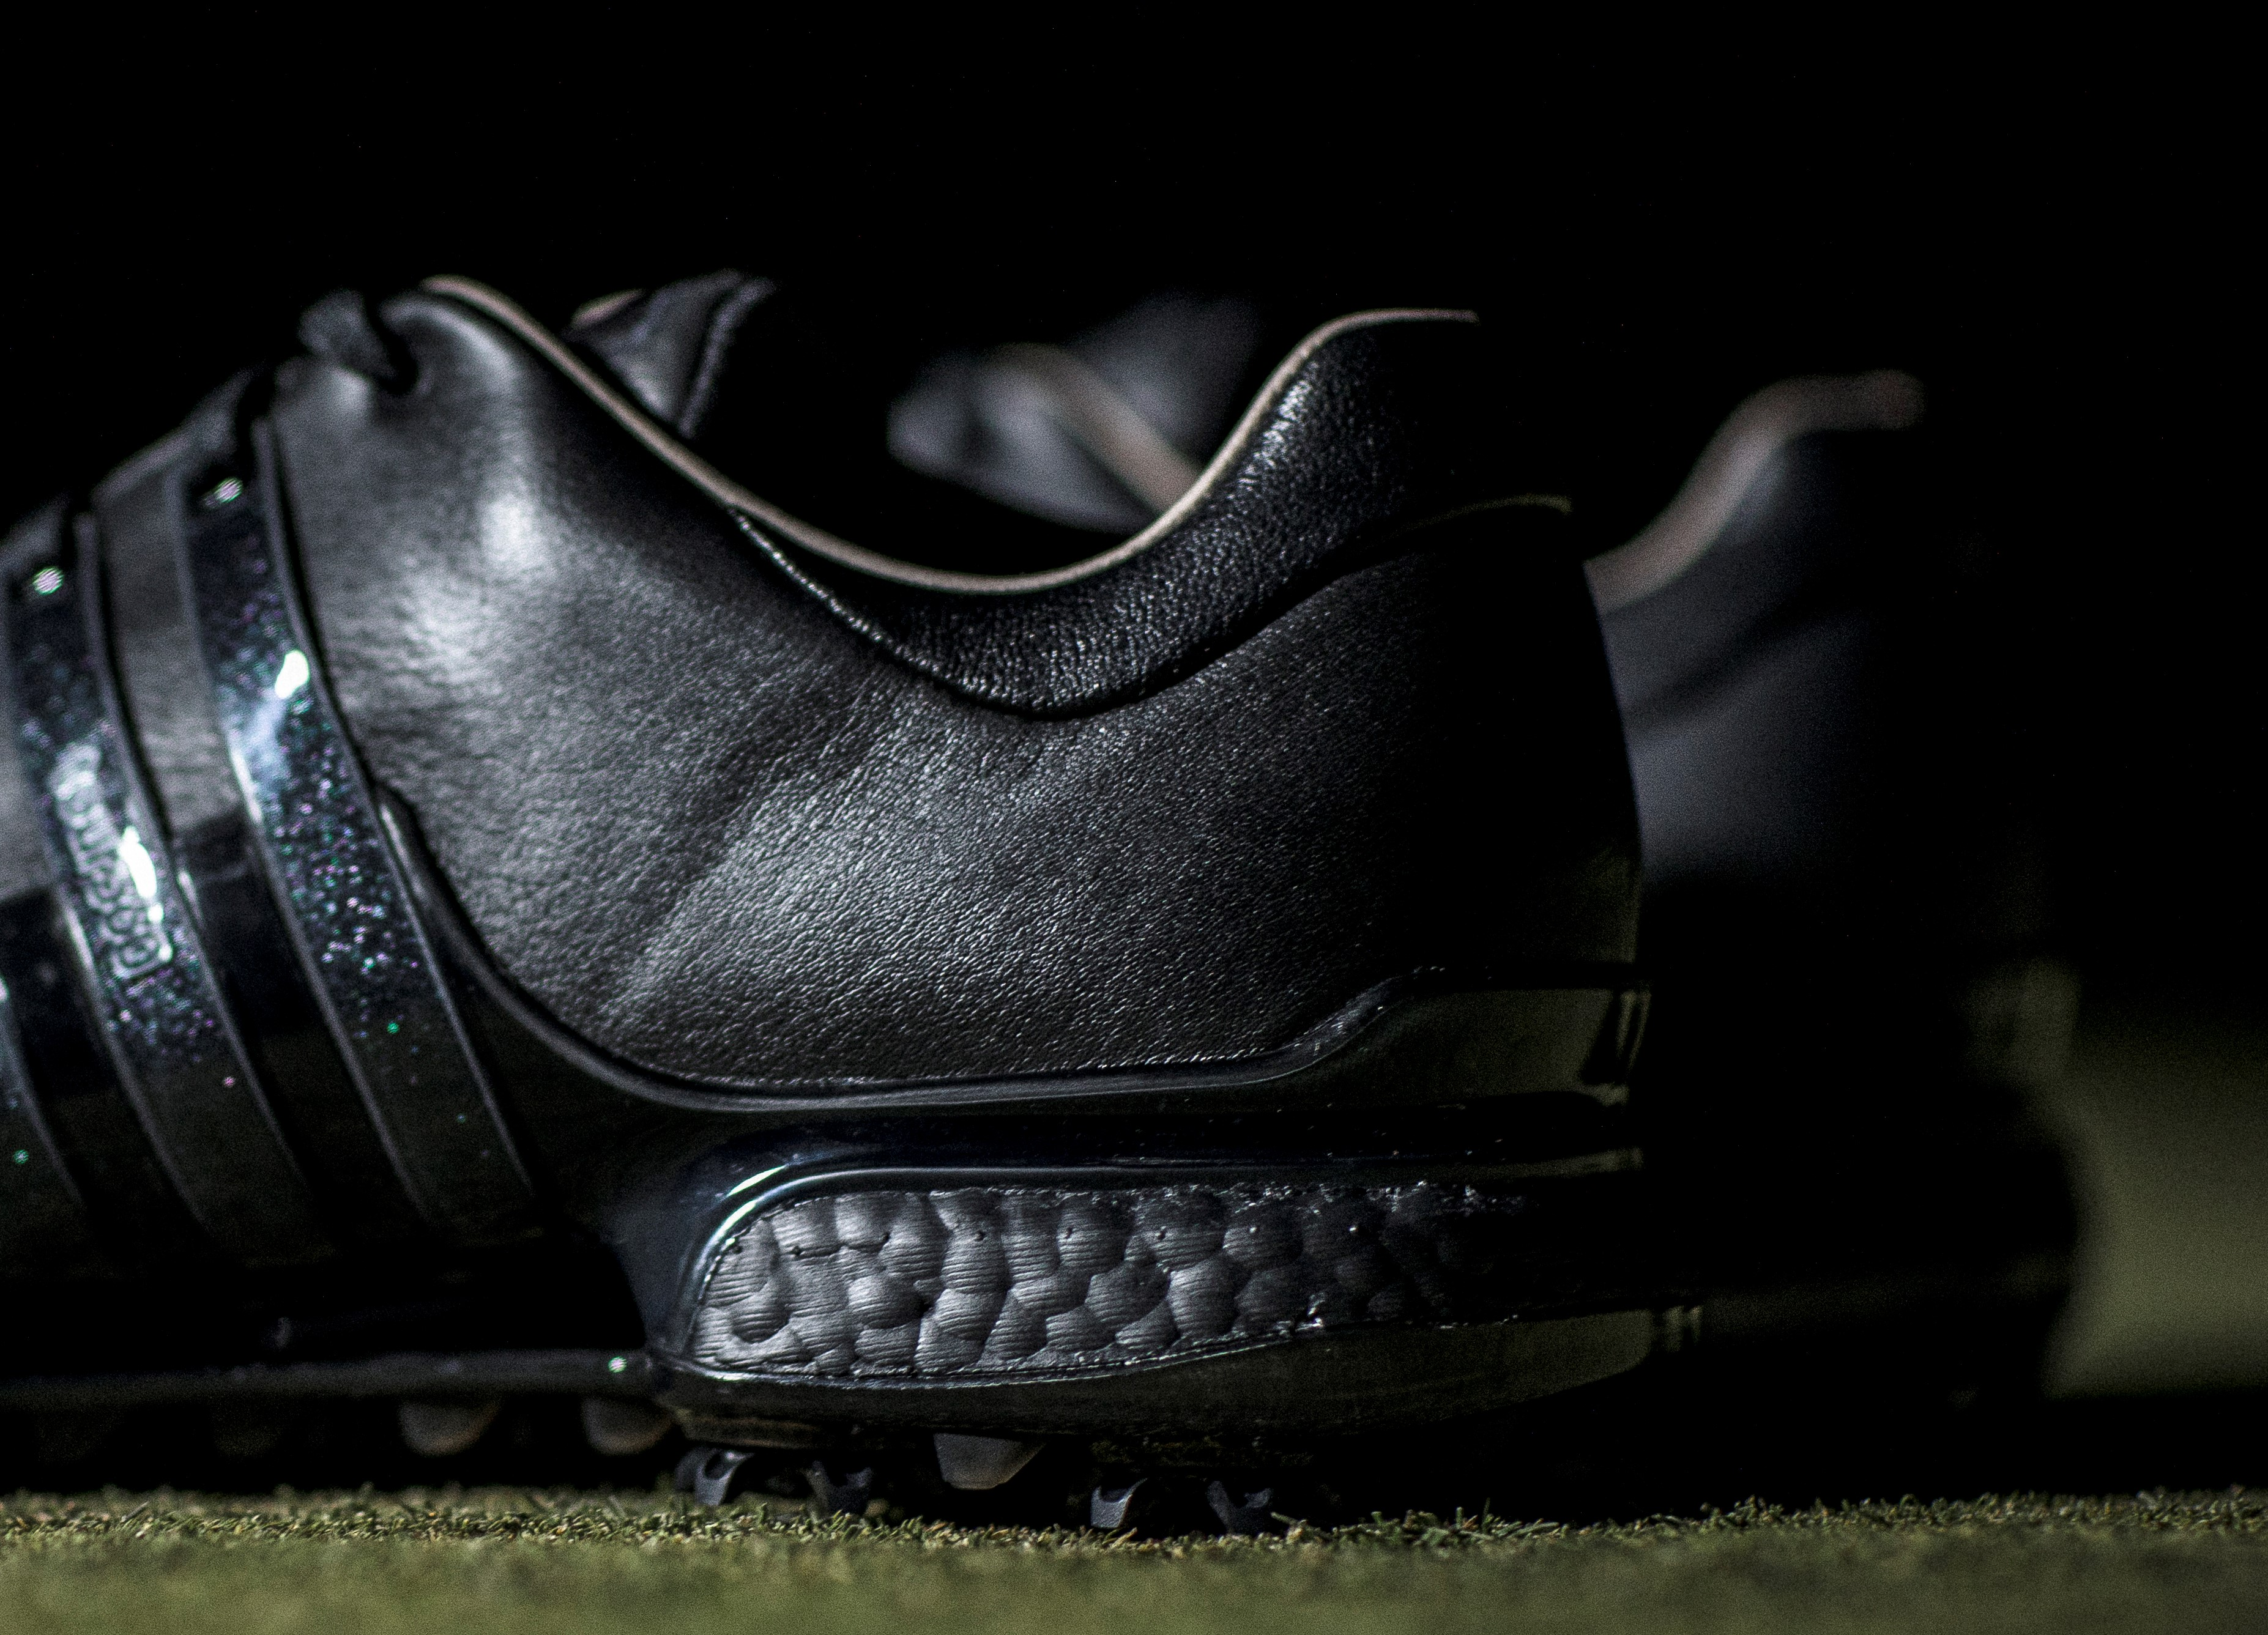 46837d039669 adidas Golf unveils special edition Black Boost colourway